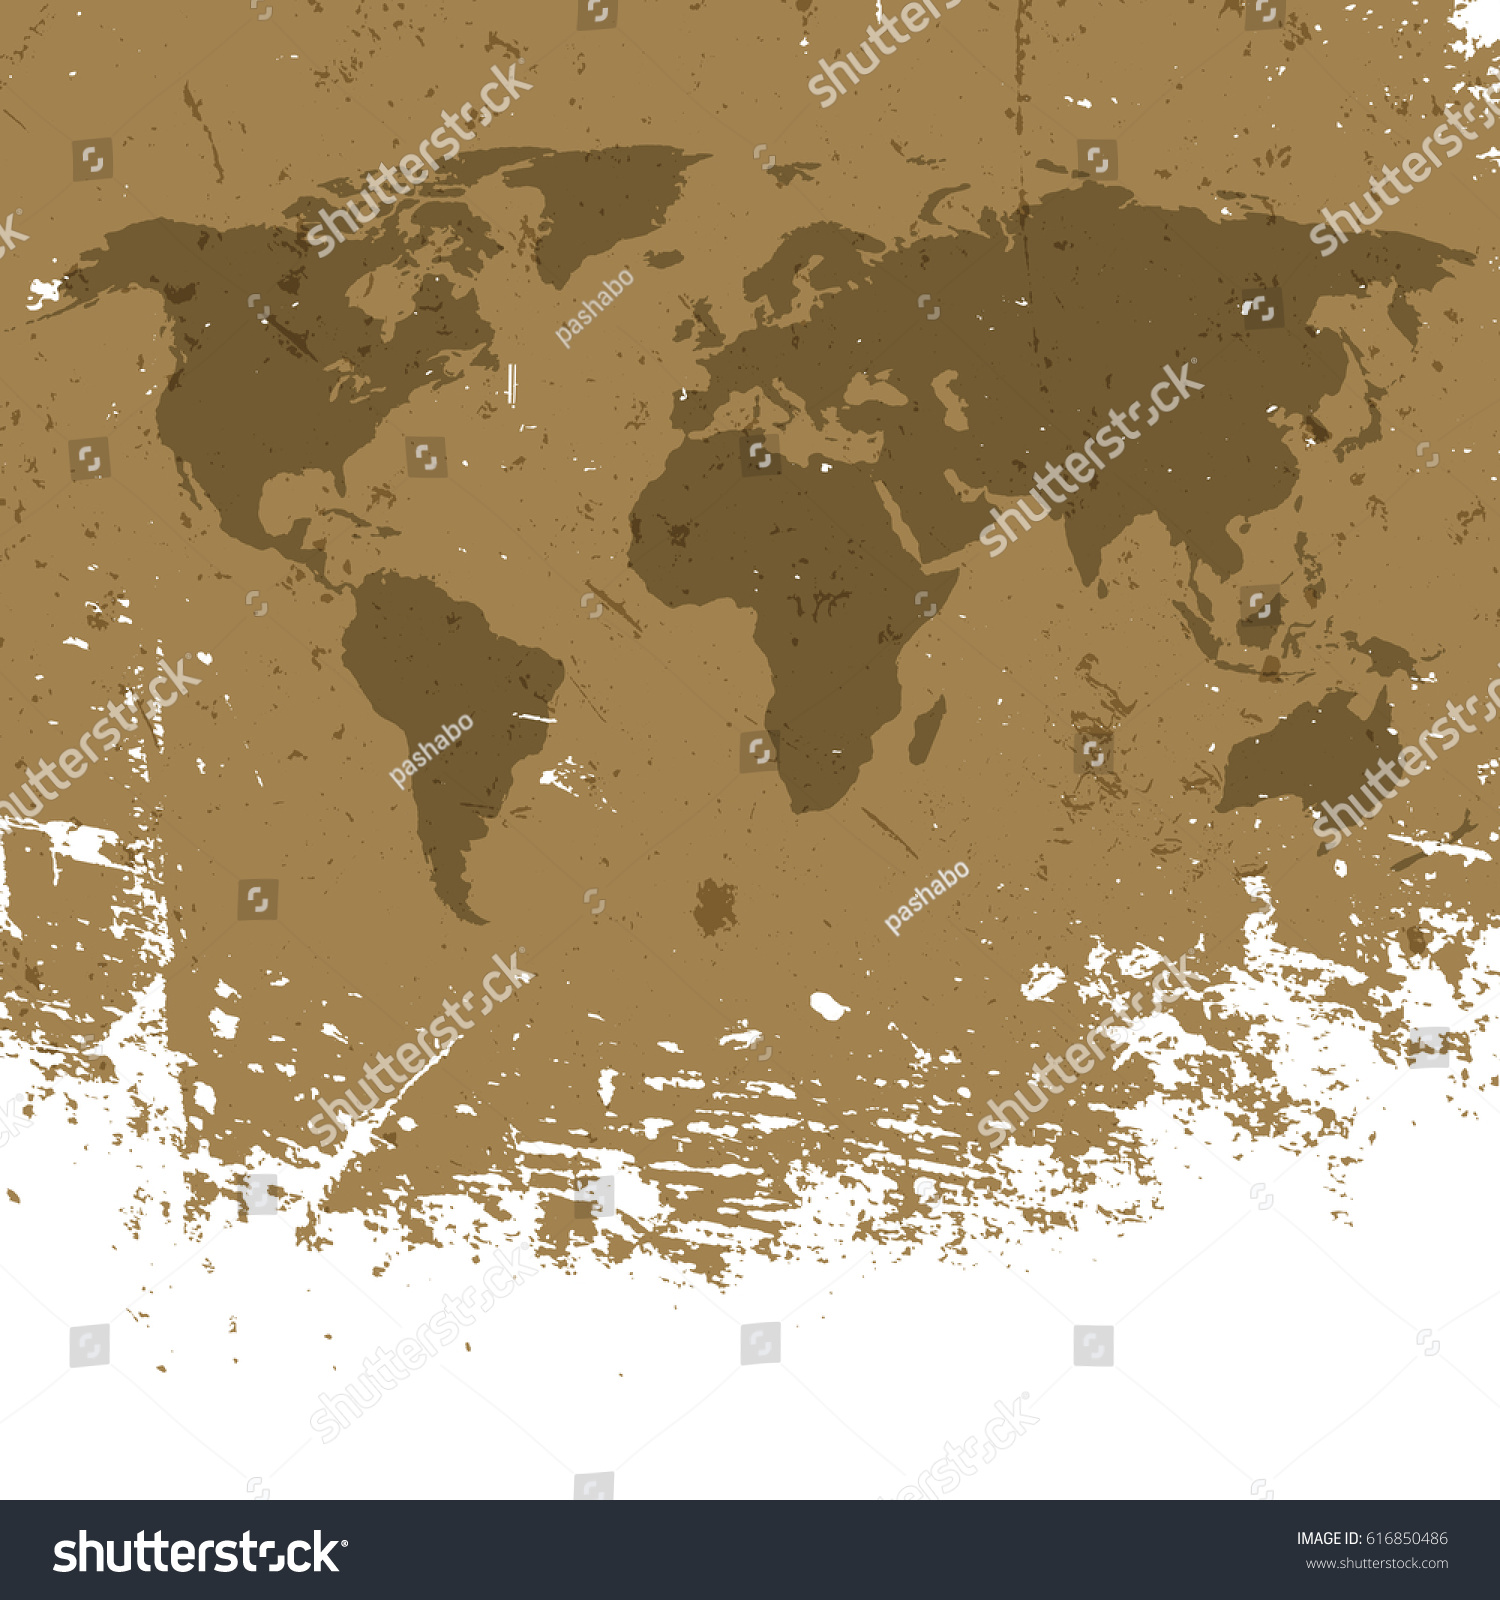 Grunge world map background abstract old vectores en stock 616850486 grunge world map background abstract old aged geography vector background isolated edge to white gumiabroncs Gallery